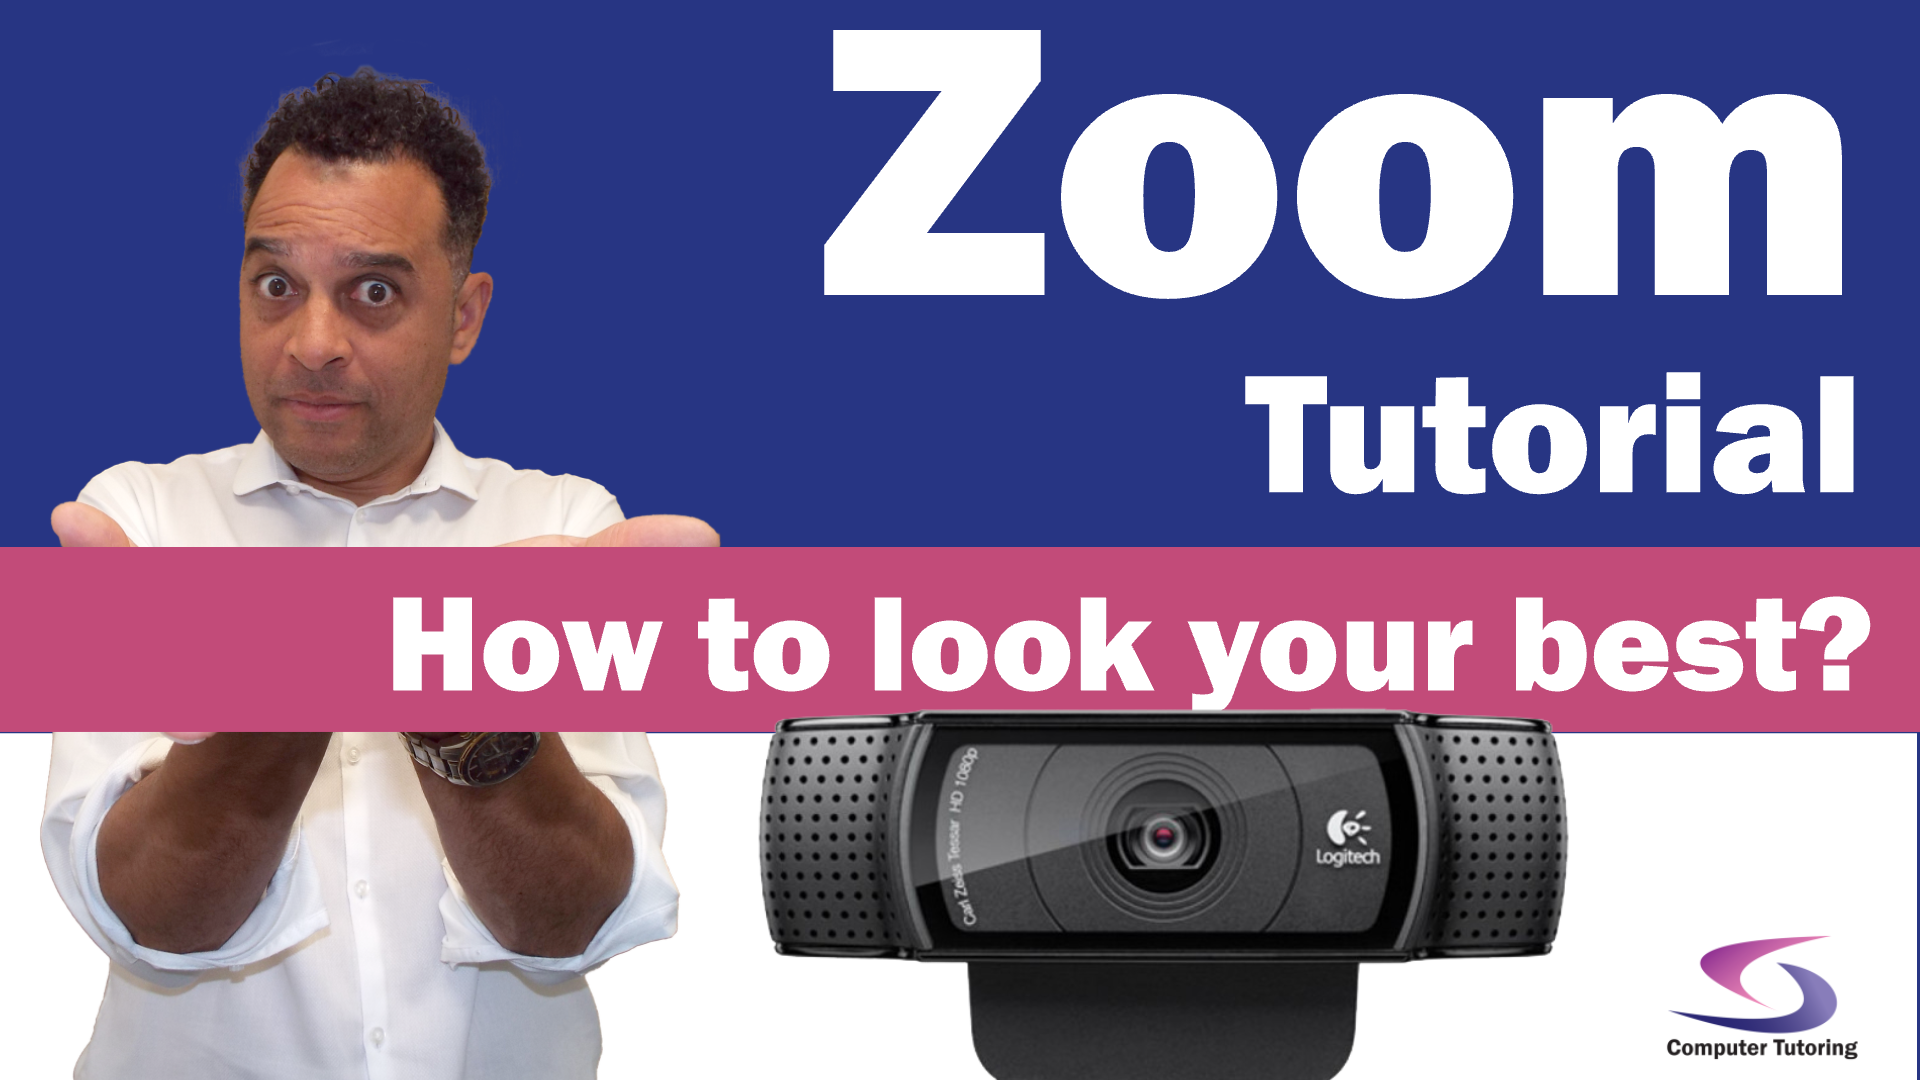 How to look your best on Zoom